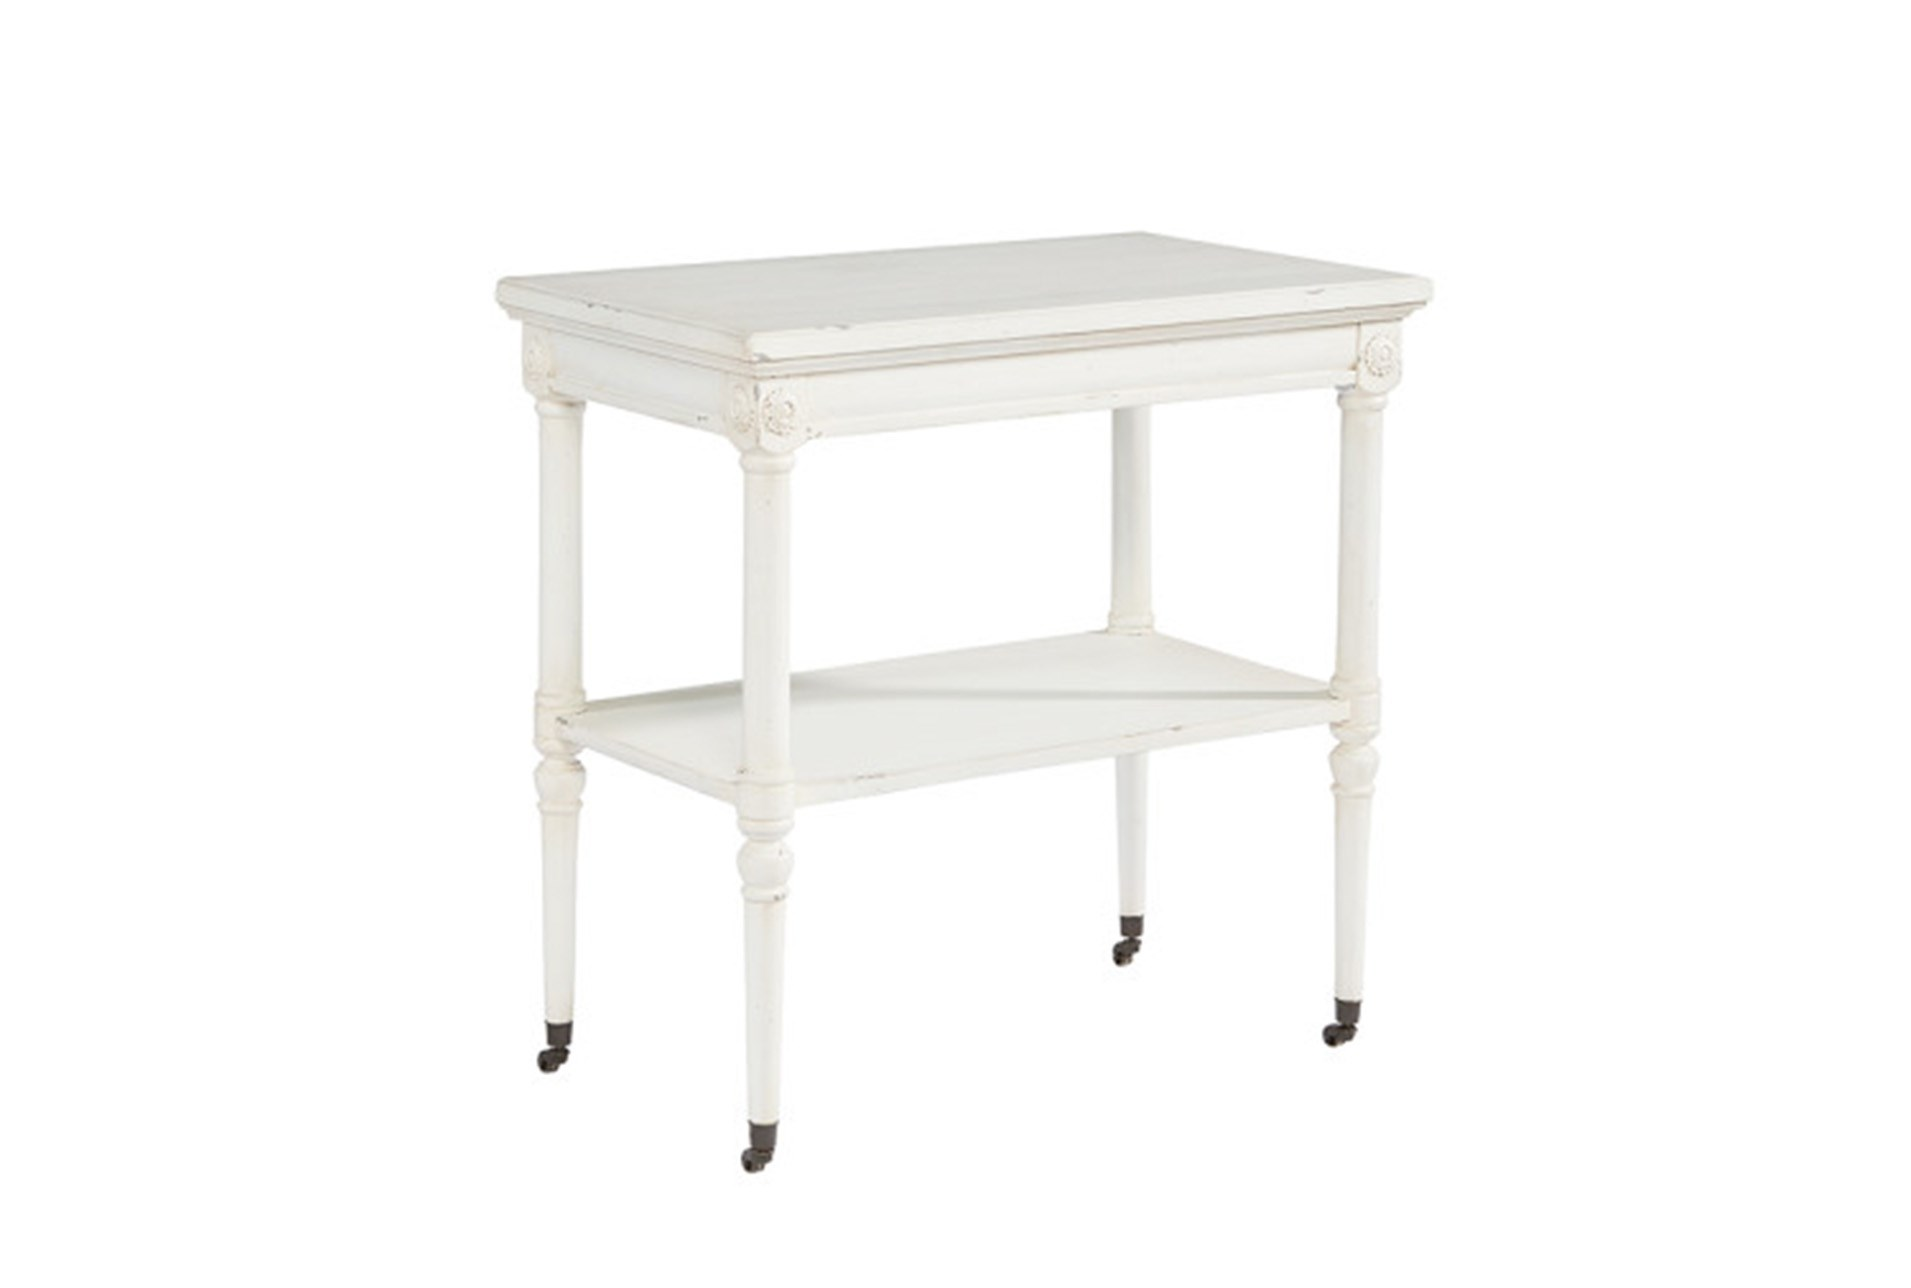 magnolia home petite rosette white accent table joanna gaines qty has been successfully your cart small gas grill glass patio with umbrella hole living spaces end tables farmhouse